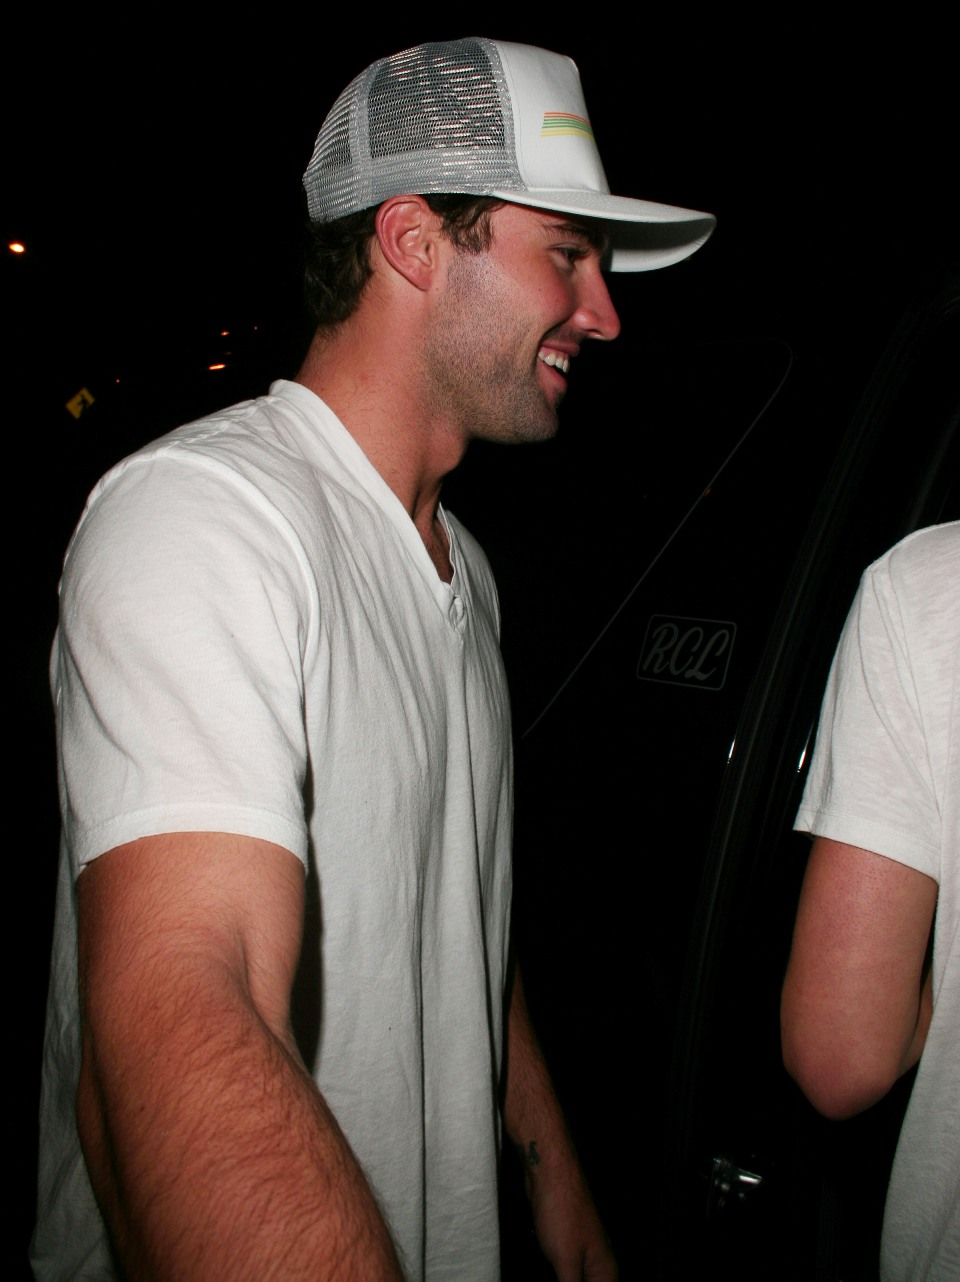 Brody Jenner - Images Hot